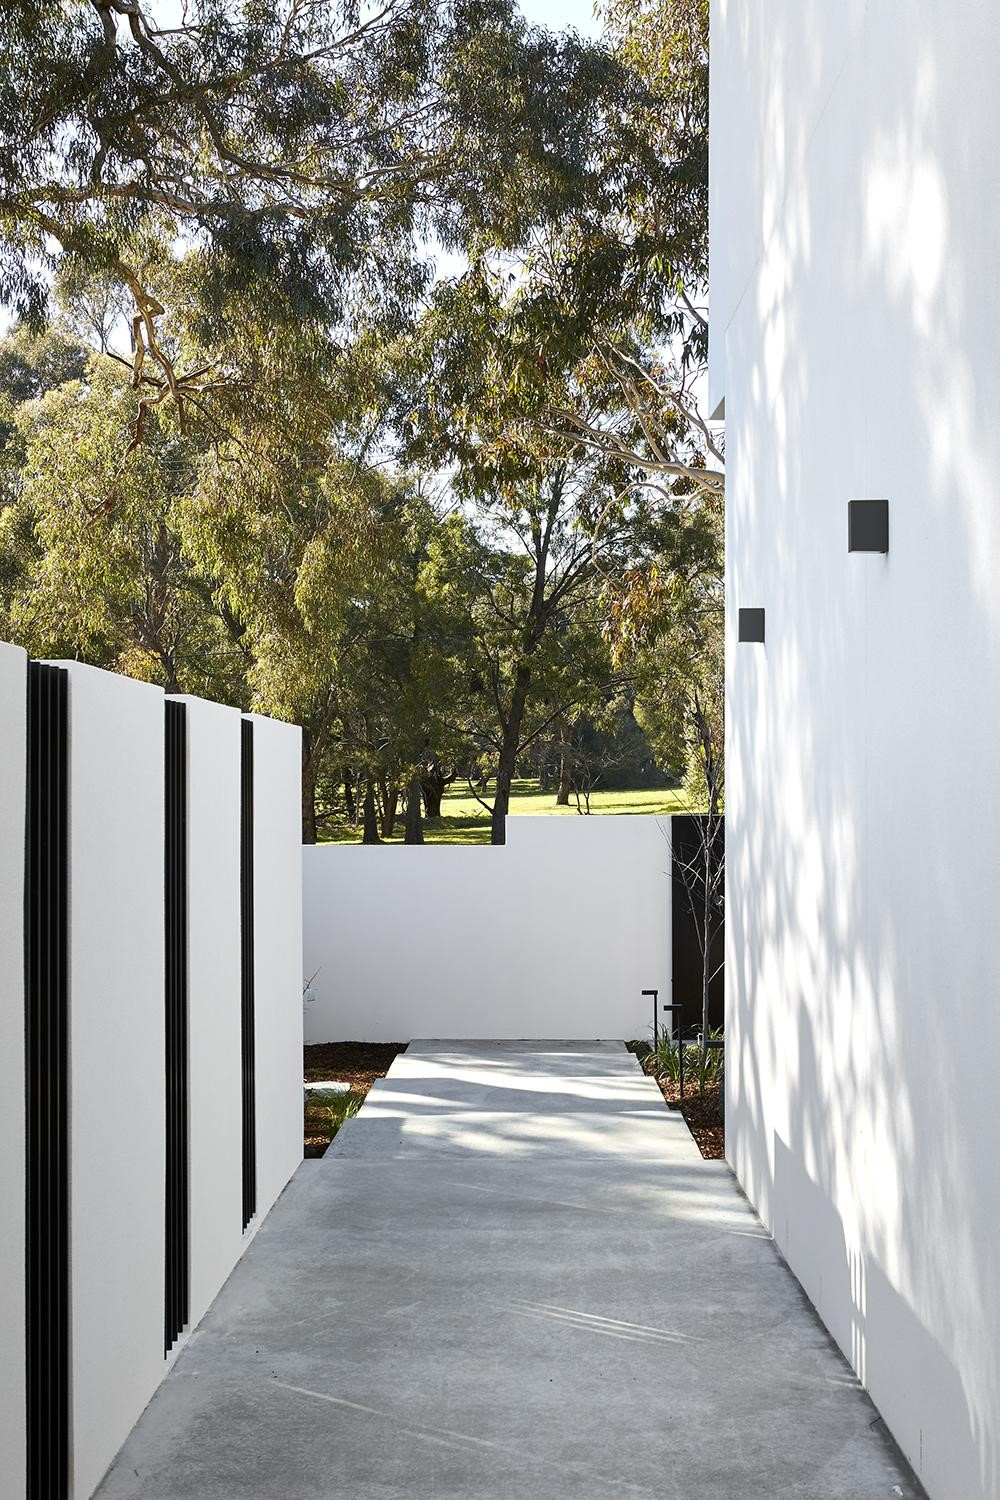 Gallery Of Jells Road By Canny Group Local Australian Design And Residential Architecture Melbourne, Vic Image 14